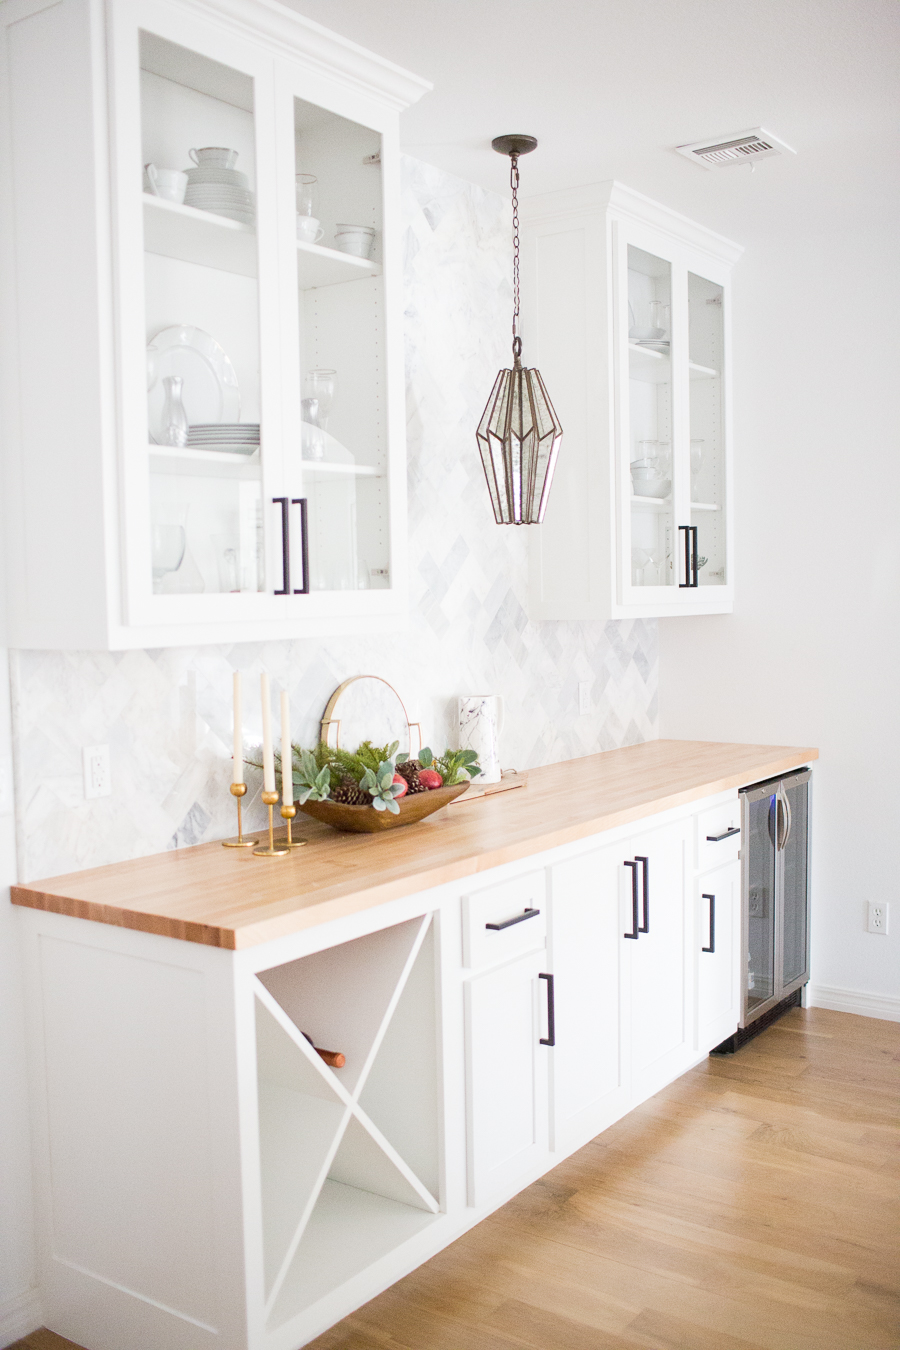 Tulsa Remodel Reveal Modern White Farmhouse Black Windows And Doors Marble Herringbone Backsplash Bar Butcher Block With Cabinets Hardware